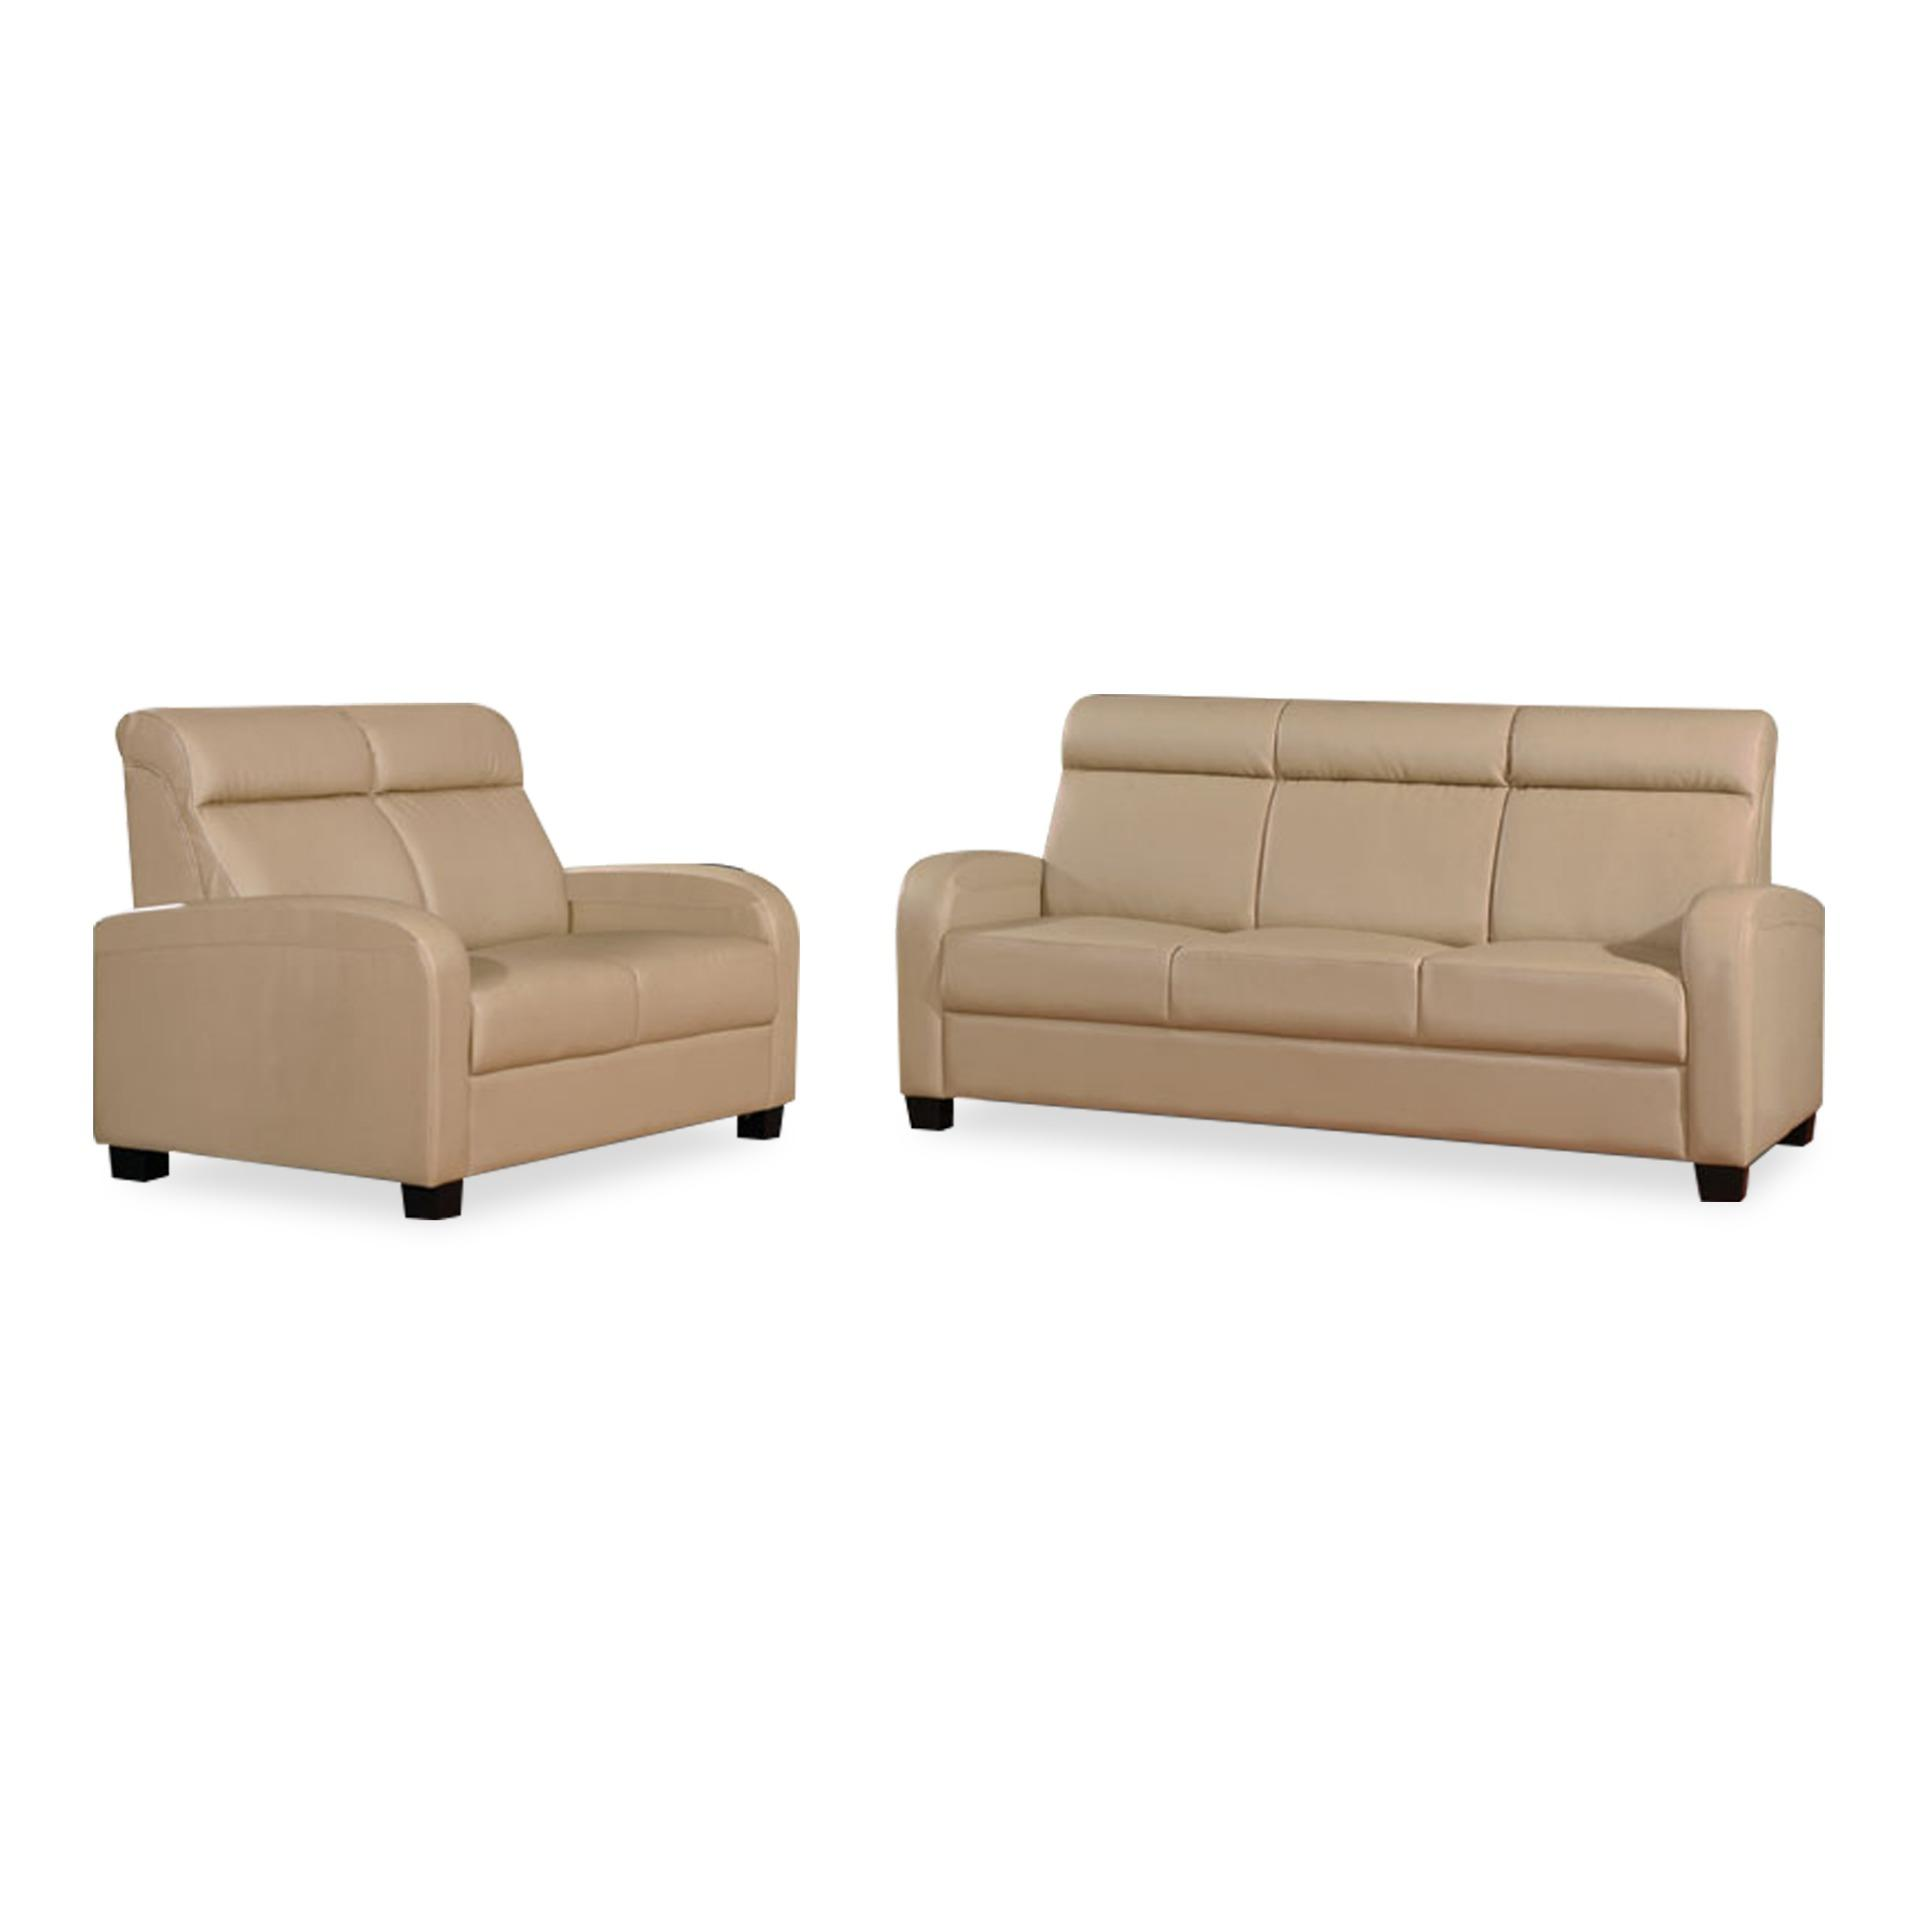 Diego PVC 3+2 Seater Sofa (FREE DELIVERY)(FREE ASSEMBLY)